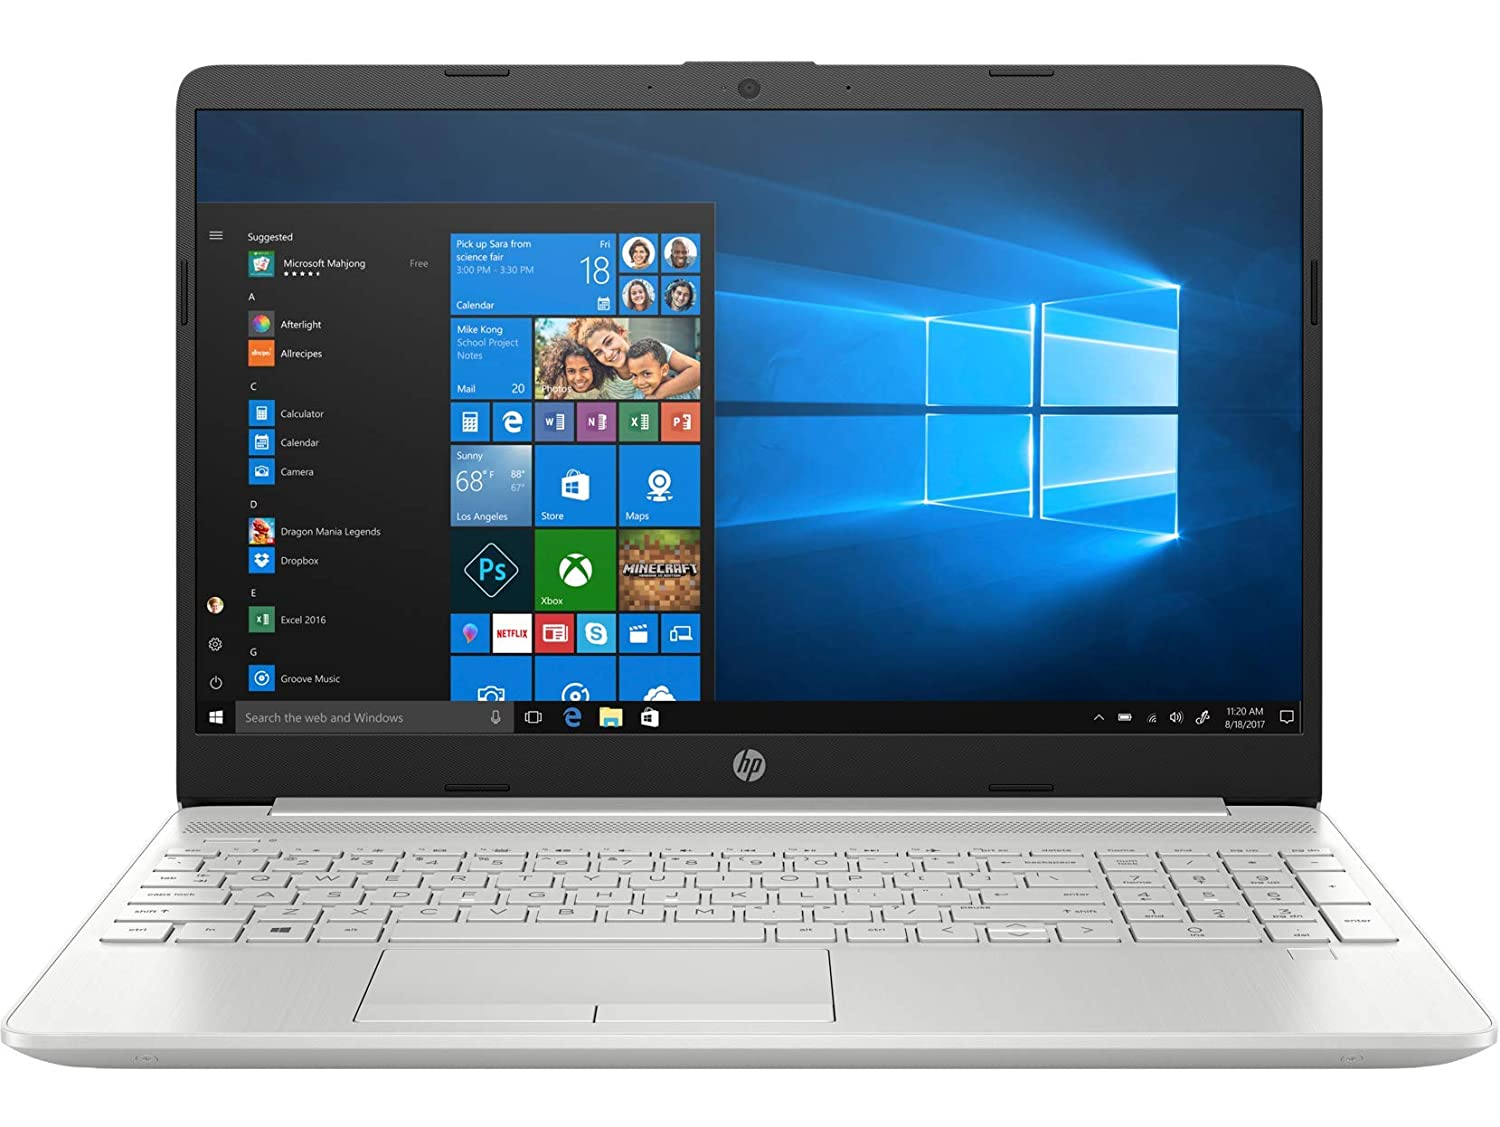 HP 15 Thin   Light 15.6 inch FHD Laptop  11th Gen Intel Core i5 1135G7, 8 GB DDR4, 1TB HDD, Windows 10 Home, MS Office, Integrated Graphics, FPR, Natur